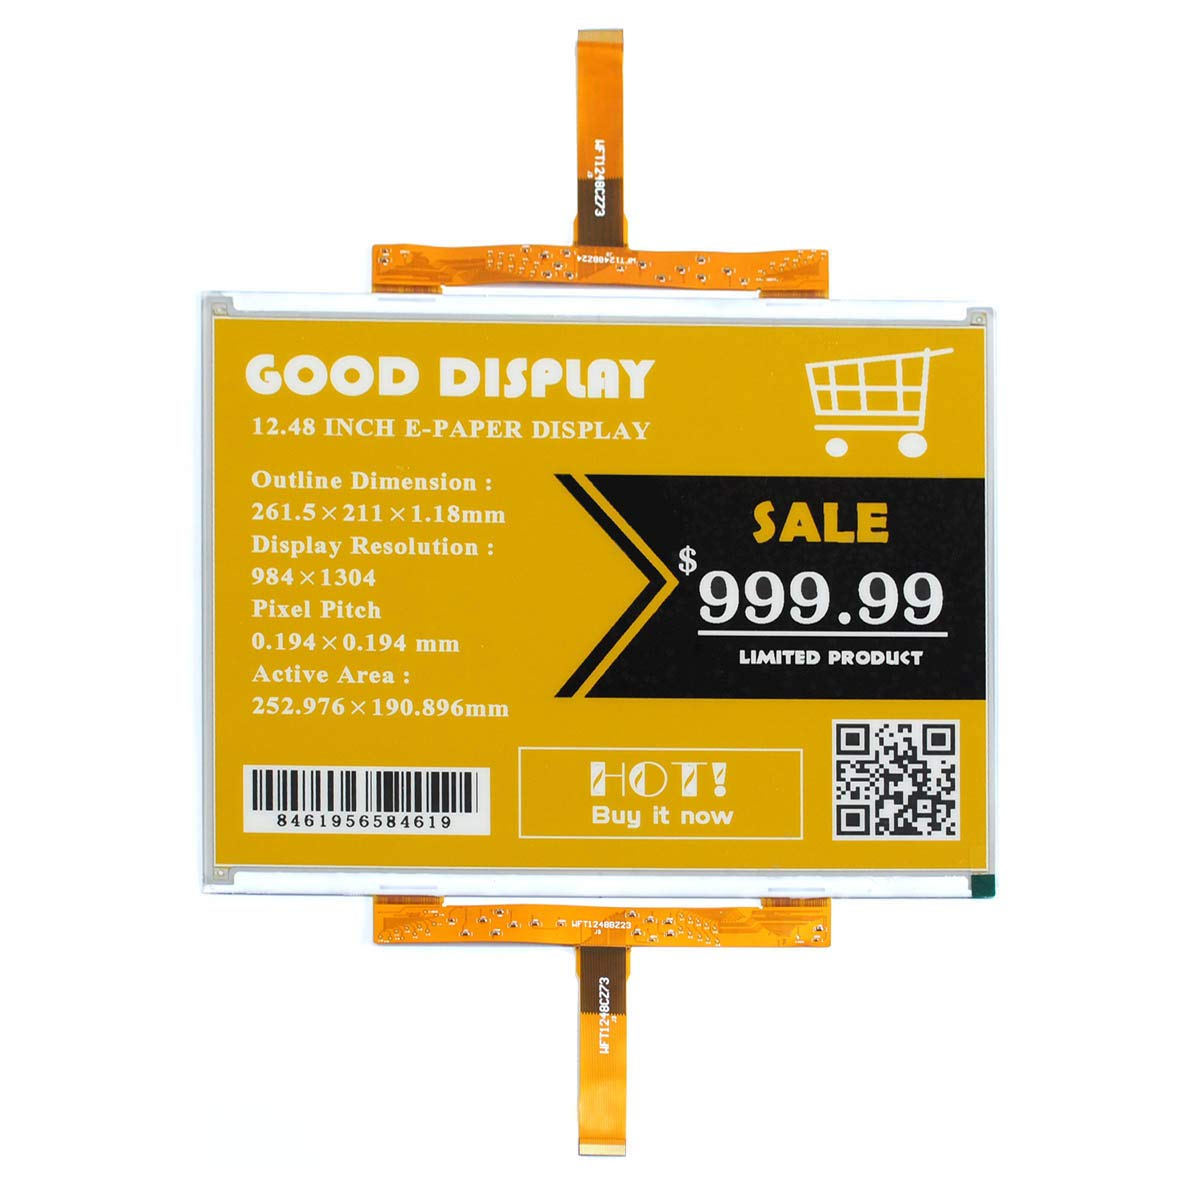 GooDisplay 12.48 Inch Color Large E-Paper Screen Eink Display Electronic Paper Display Panel Black White Yellow